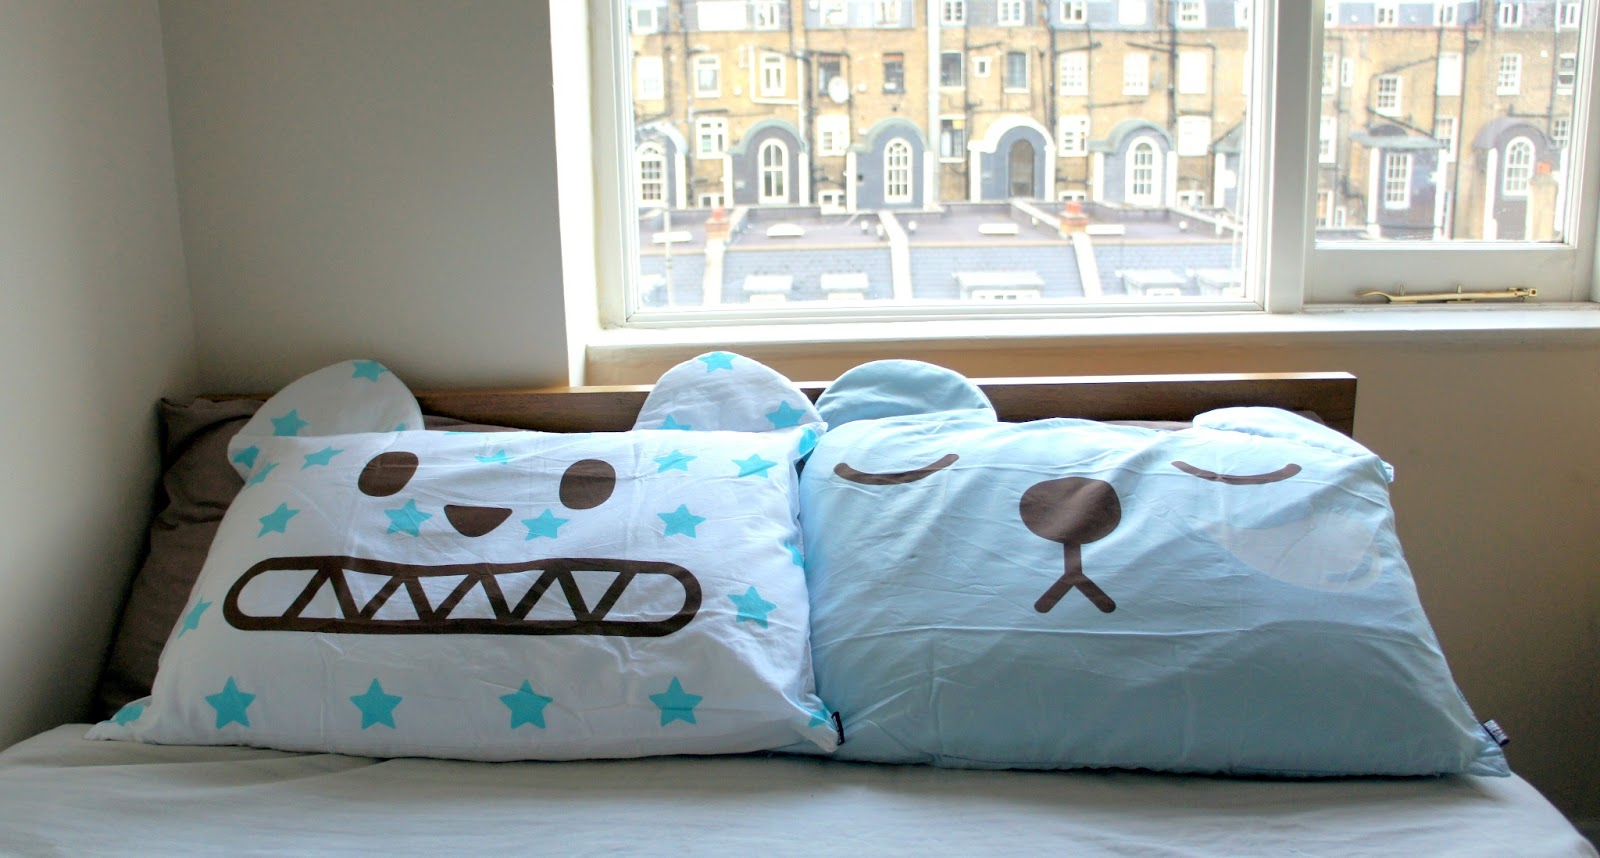 Cute Pillow Cases : somewhere yonder: super-cute pillow cases